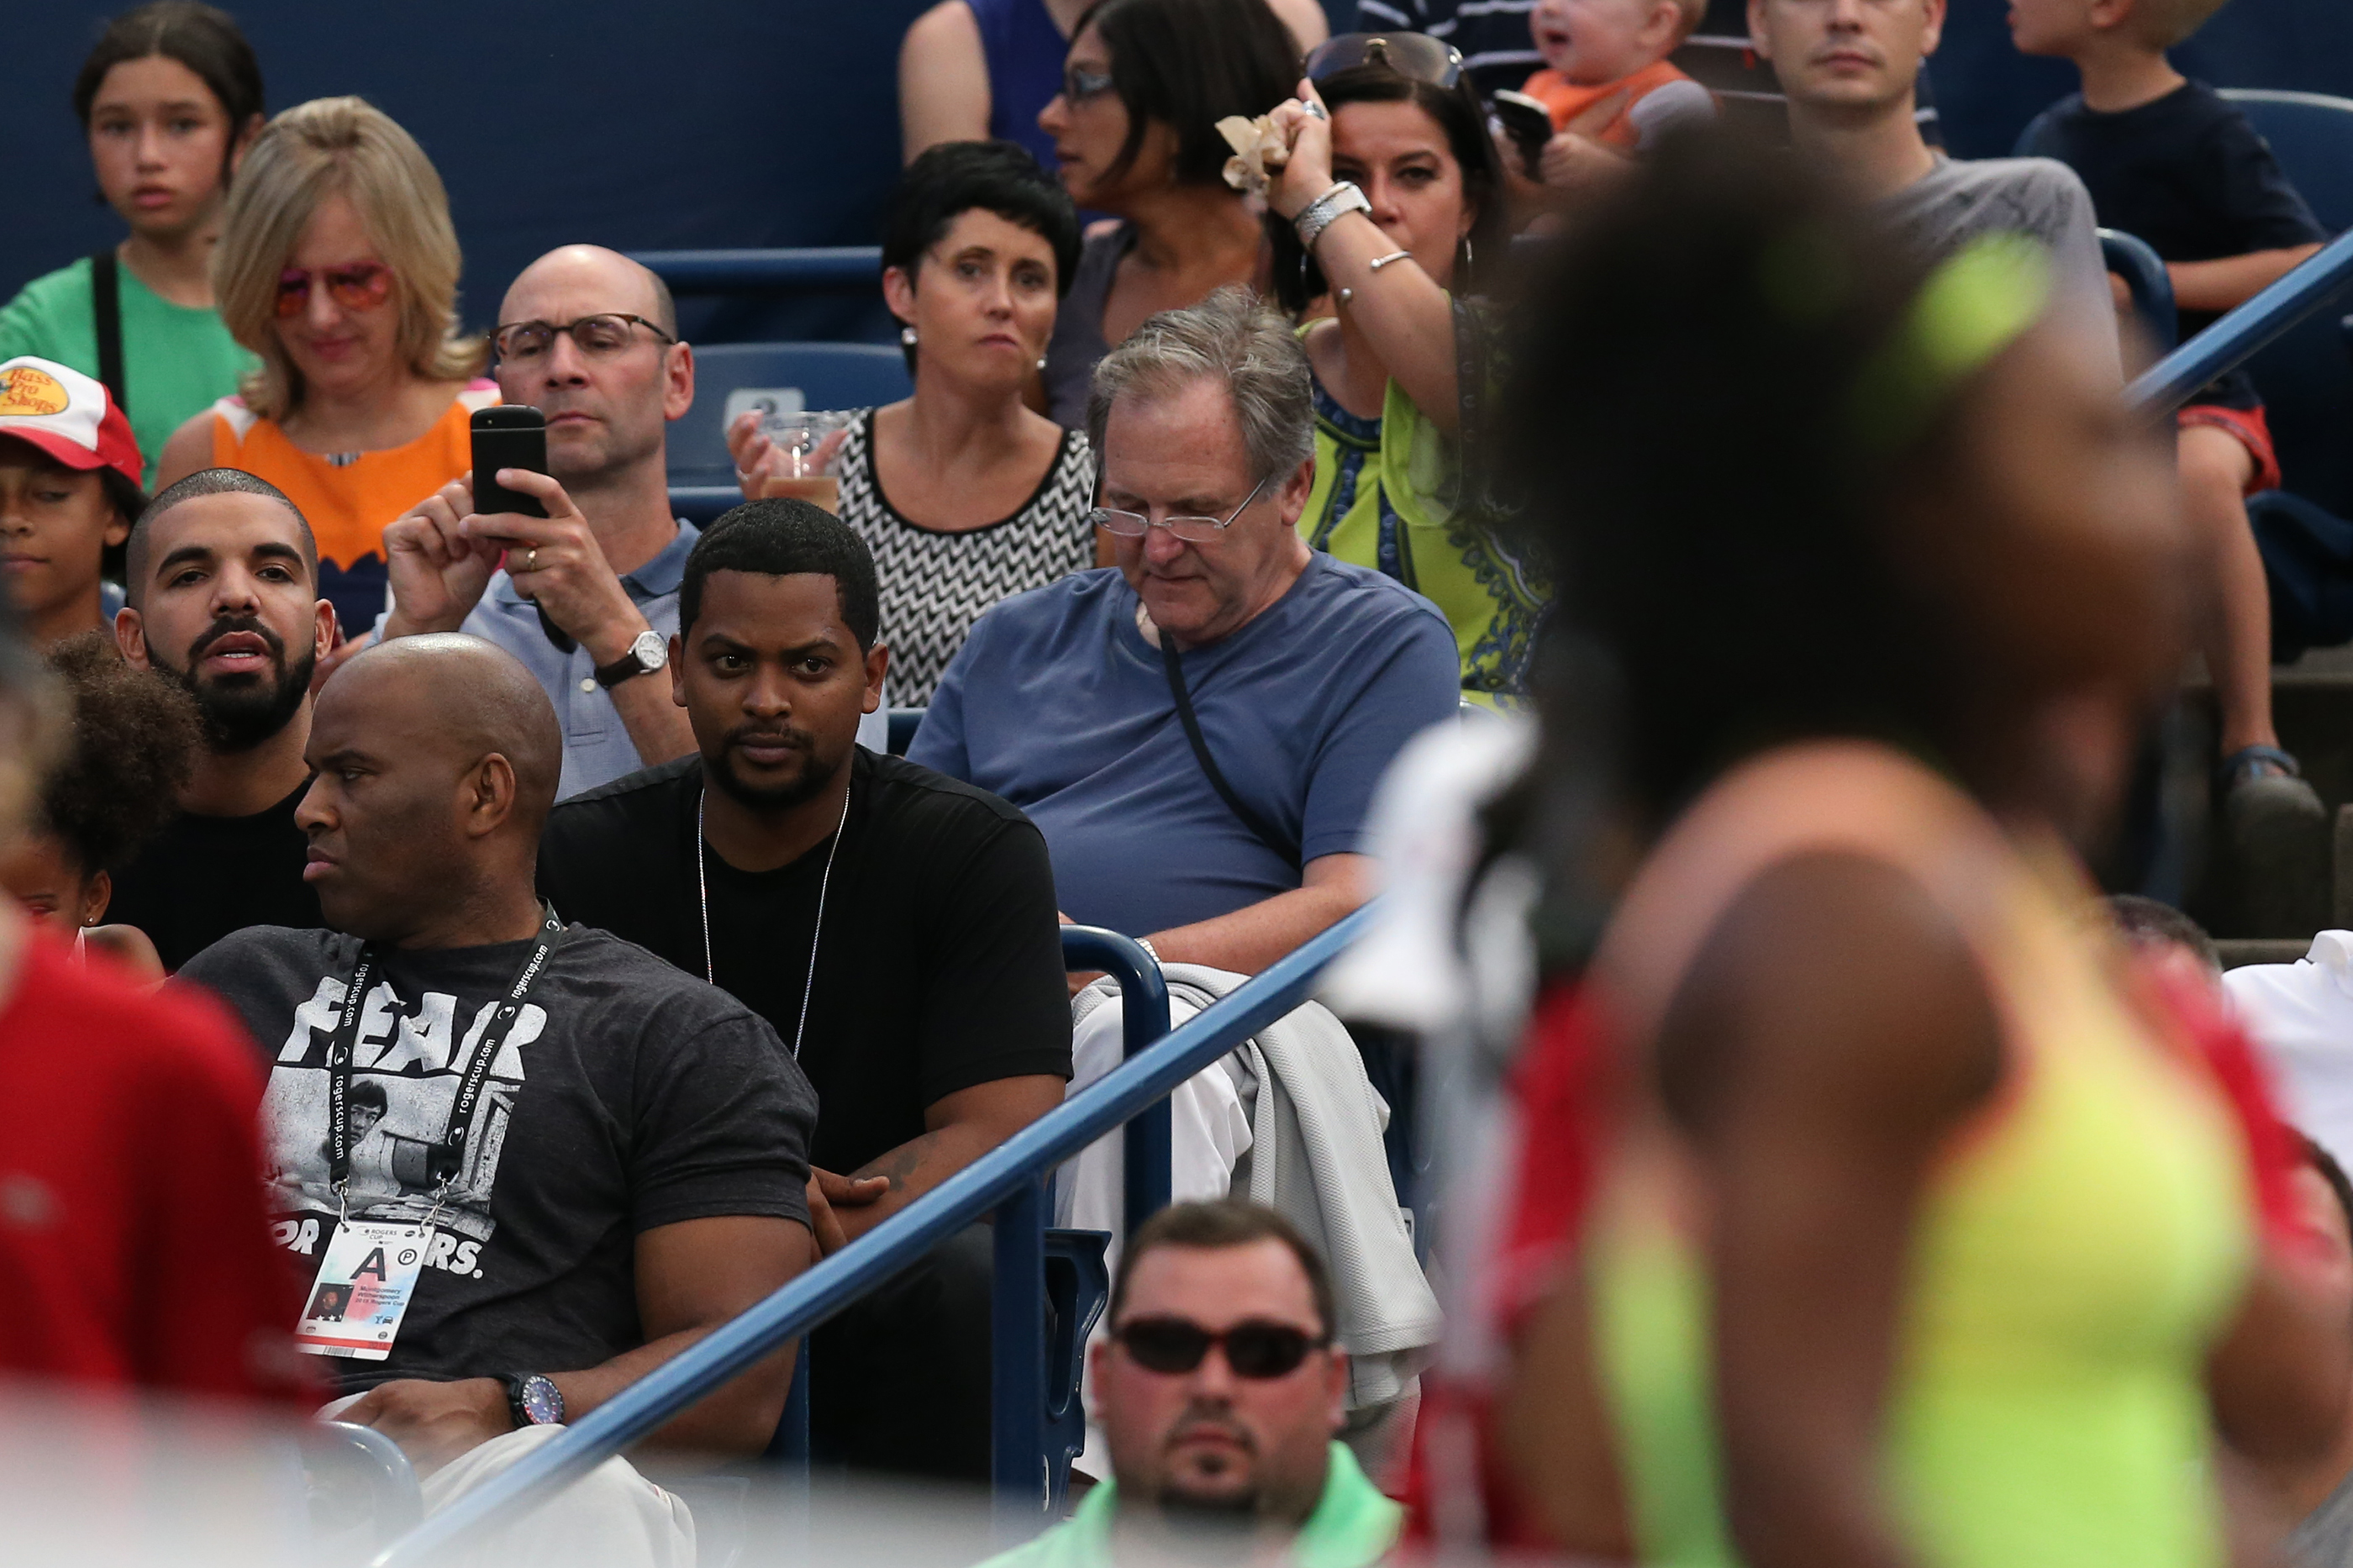 Serena Williams Vs Andrea Petkovic At Roger's Cup